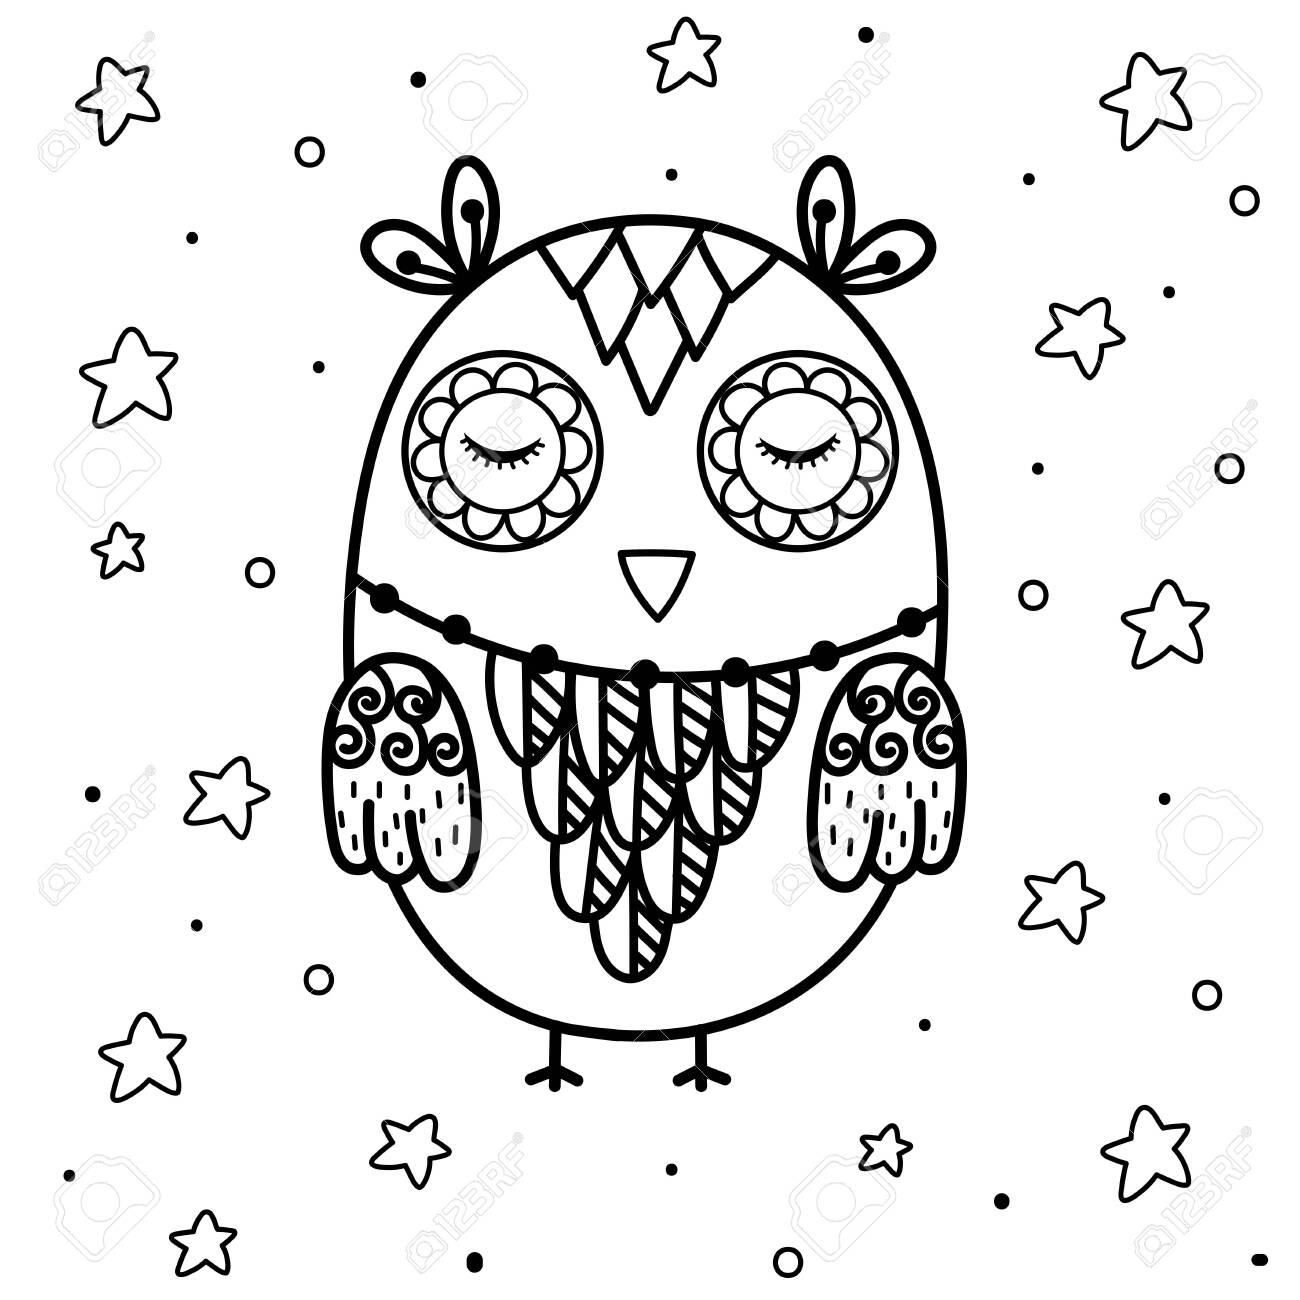 Cute Sleeping Owl Coloring Page Black And White Print With Funny Royalty Free Cliparts Vectors And Stock Illustration Image 157120034